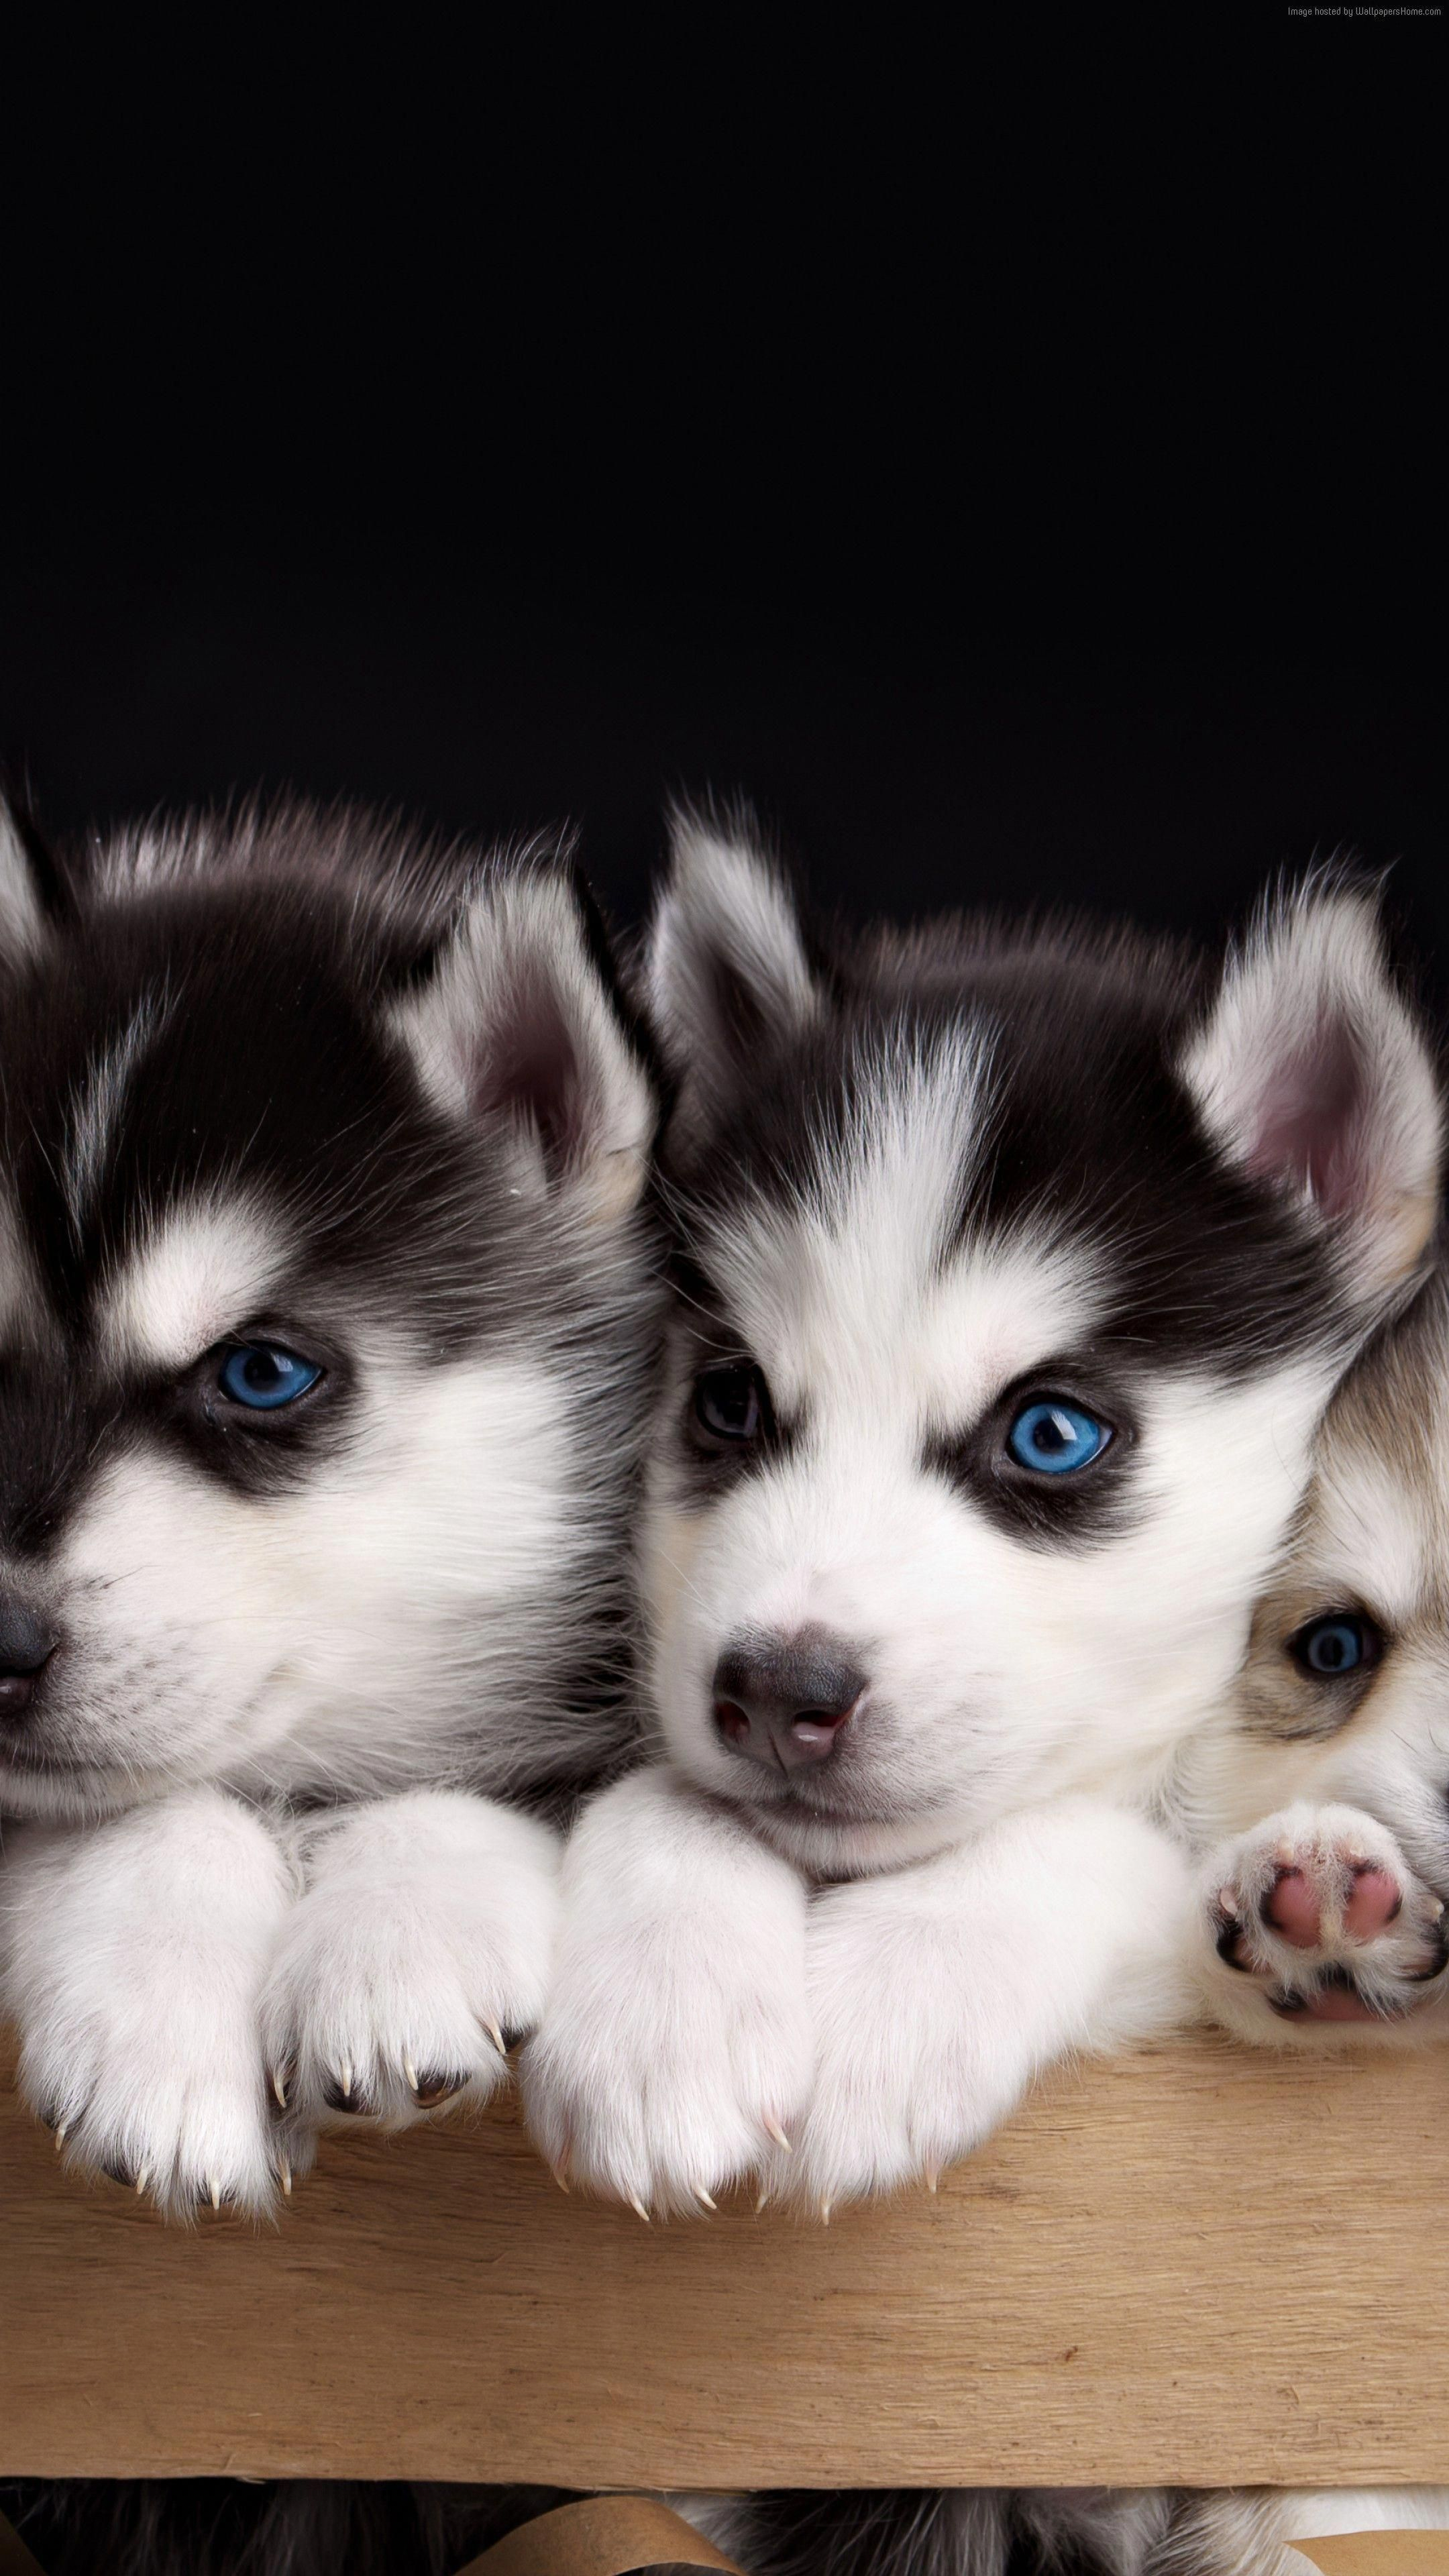 Labradorpuppyfood Siberianhuskypuppy Cute Puppies Husky Puppy